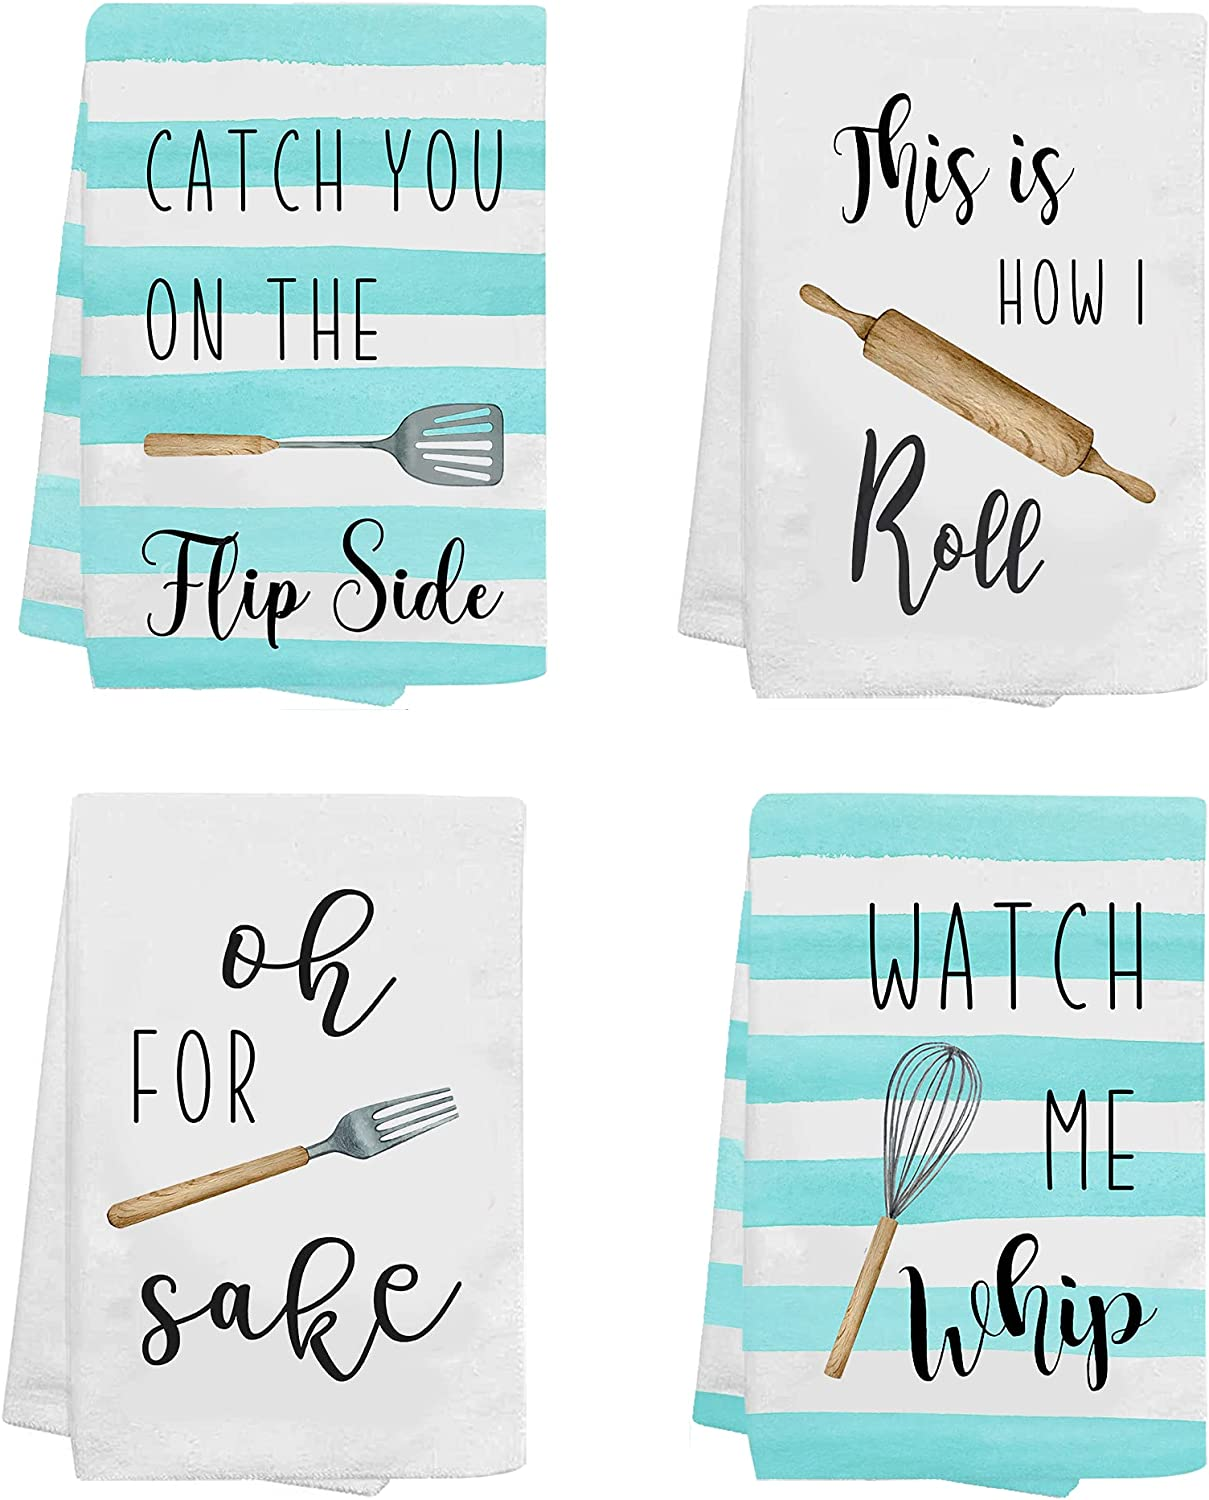 KamaLove Funny Housewarming Gifts - Kitchen Towels and Dishcloths Sets of 4 - Decorative Dish Towel, Waffle Towel, Hand Towel, Tea Towel - Gift for Housewarming, Wedding Shower Kitchen Decor New Home